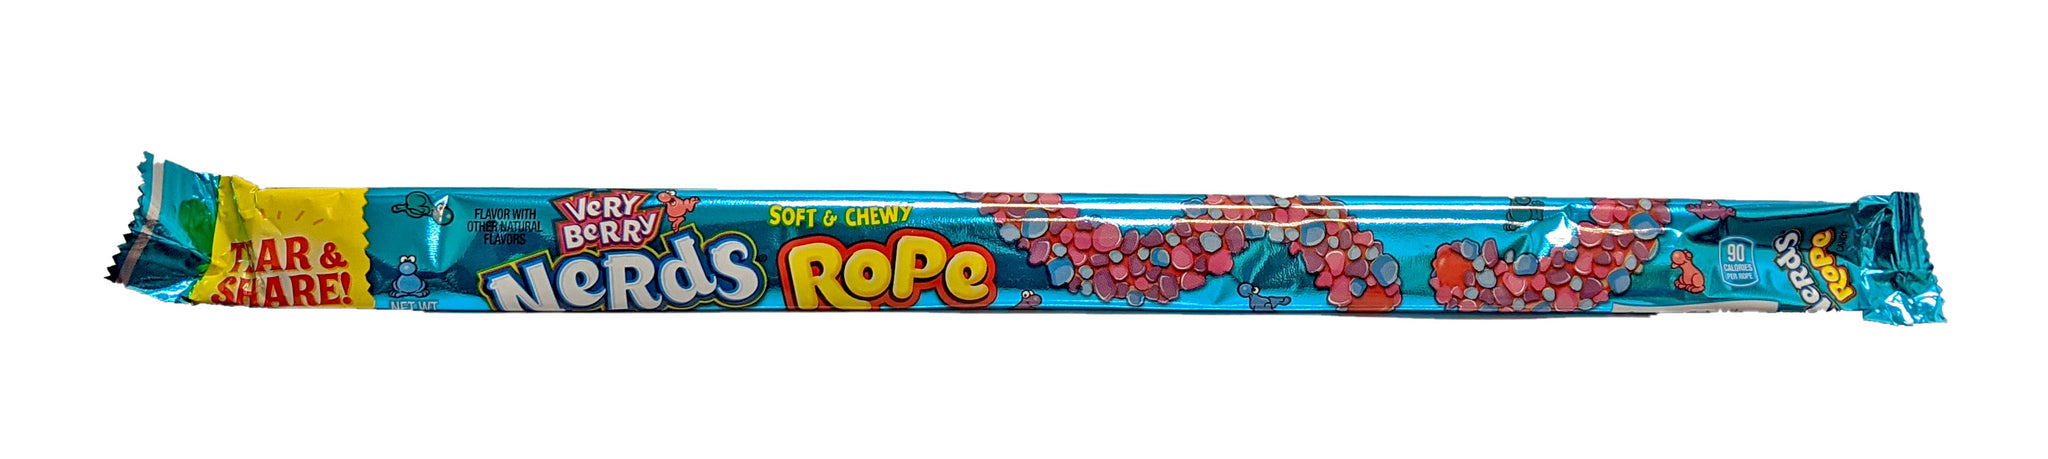 Nerds Rope Very Berry .92oz Rope or 24 Count Box